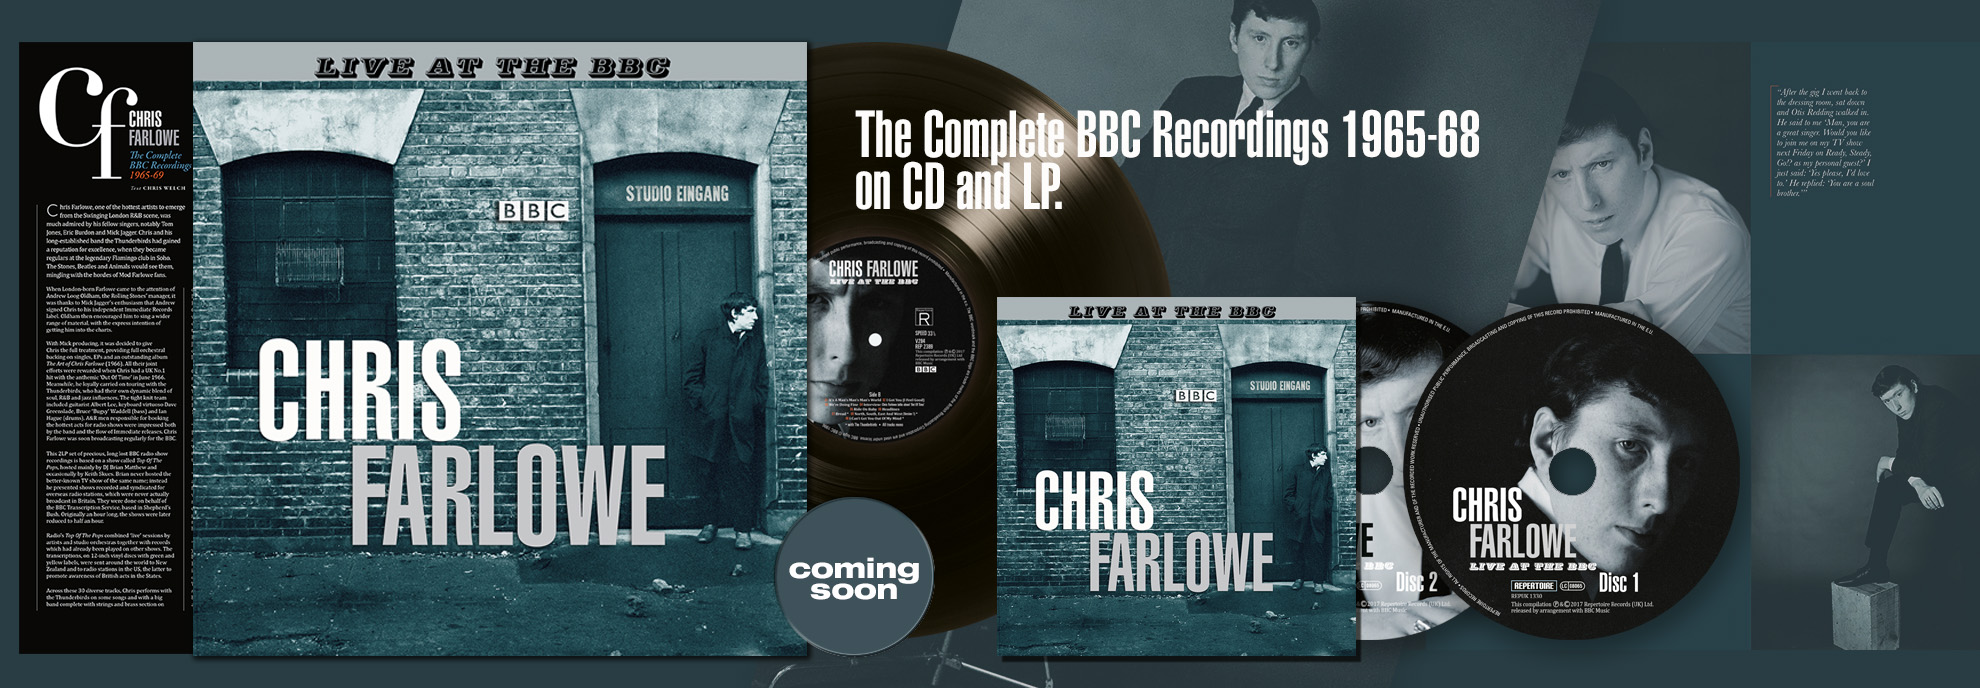 Chis-Farlowe-lp-cd-banner